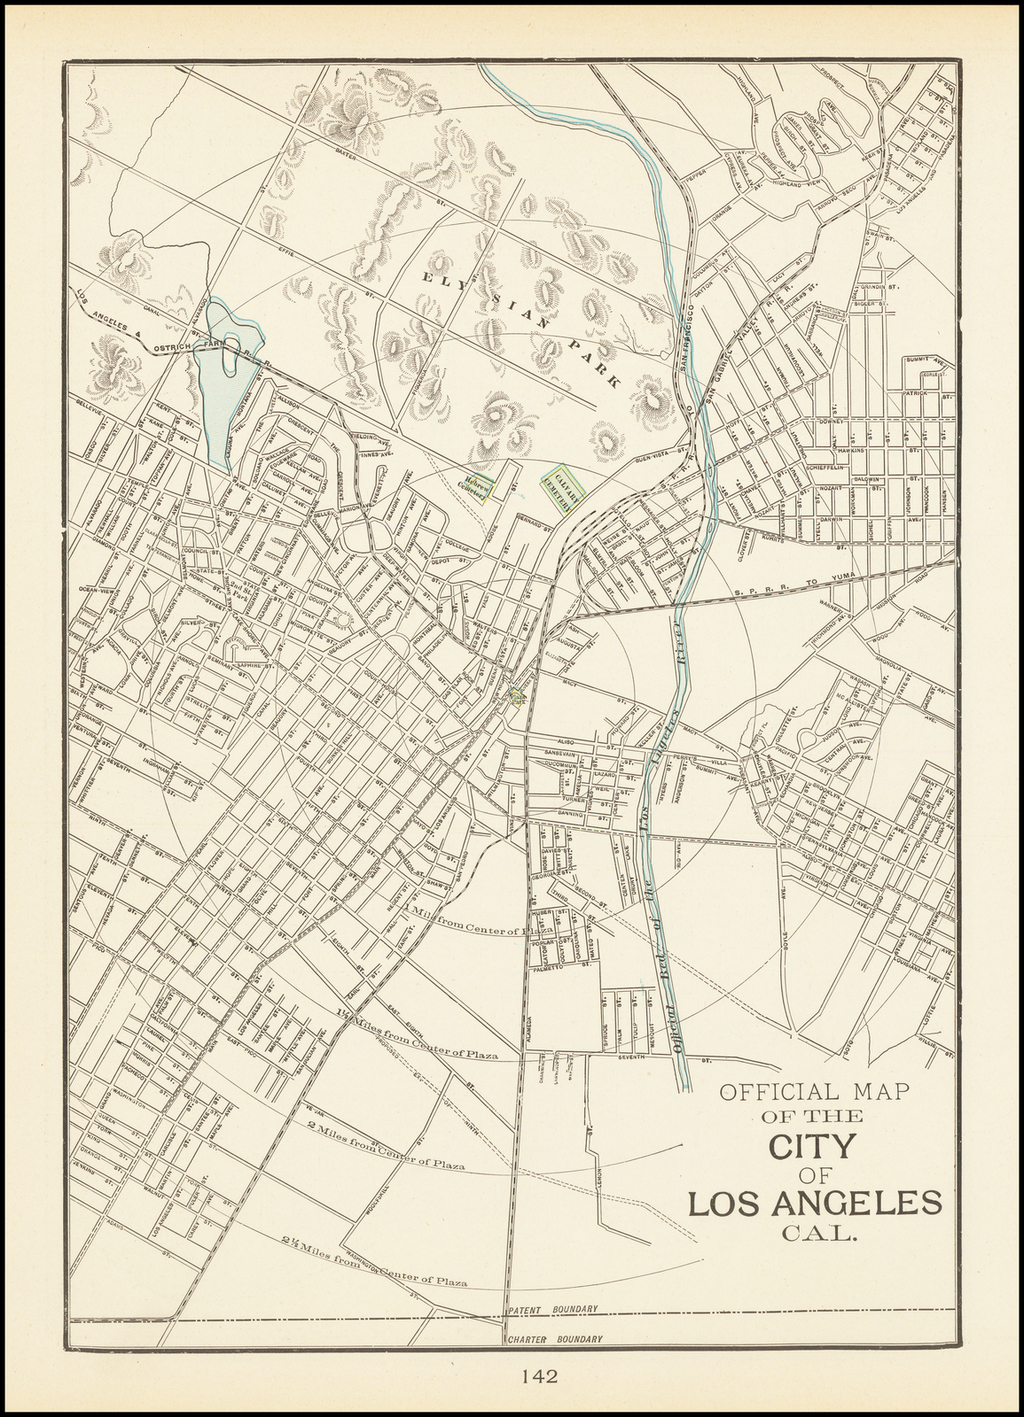 Official Map of the City of Los Angeles Cal. By George F. Cram